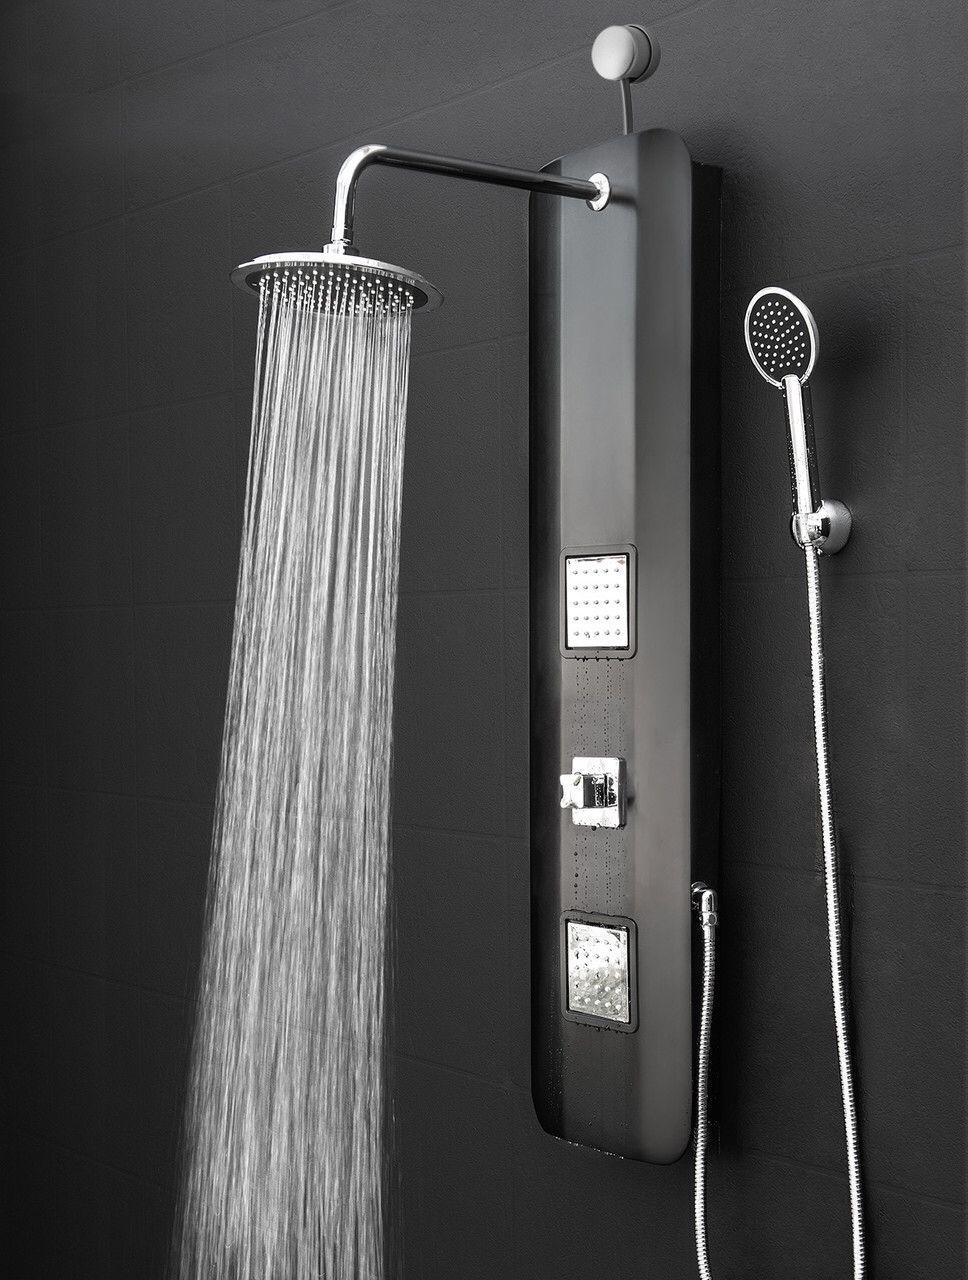 Features: -Shower panel system comes with a easy connect adapter ...